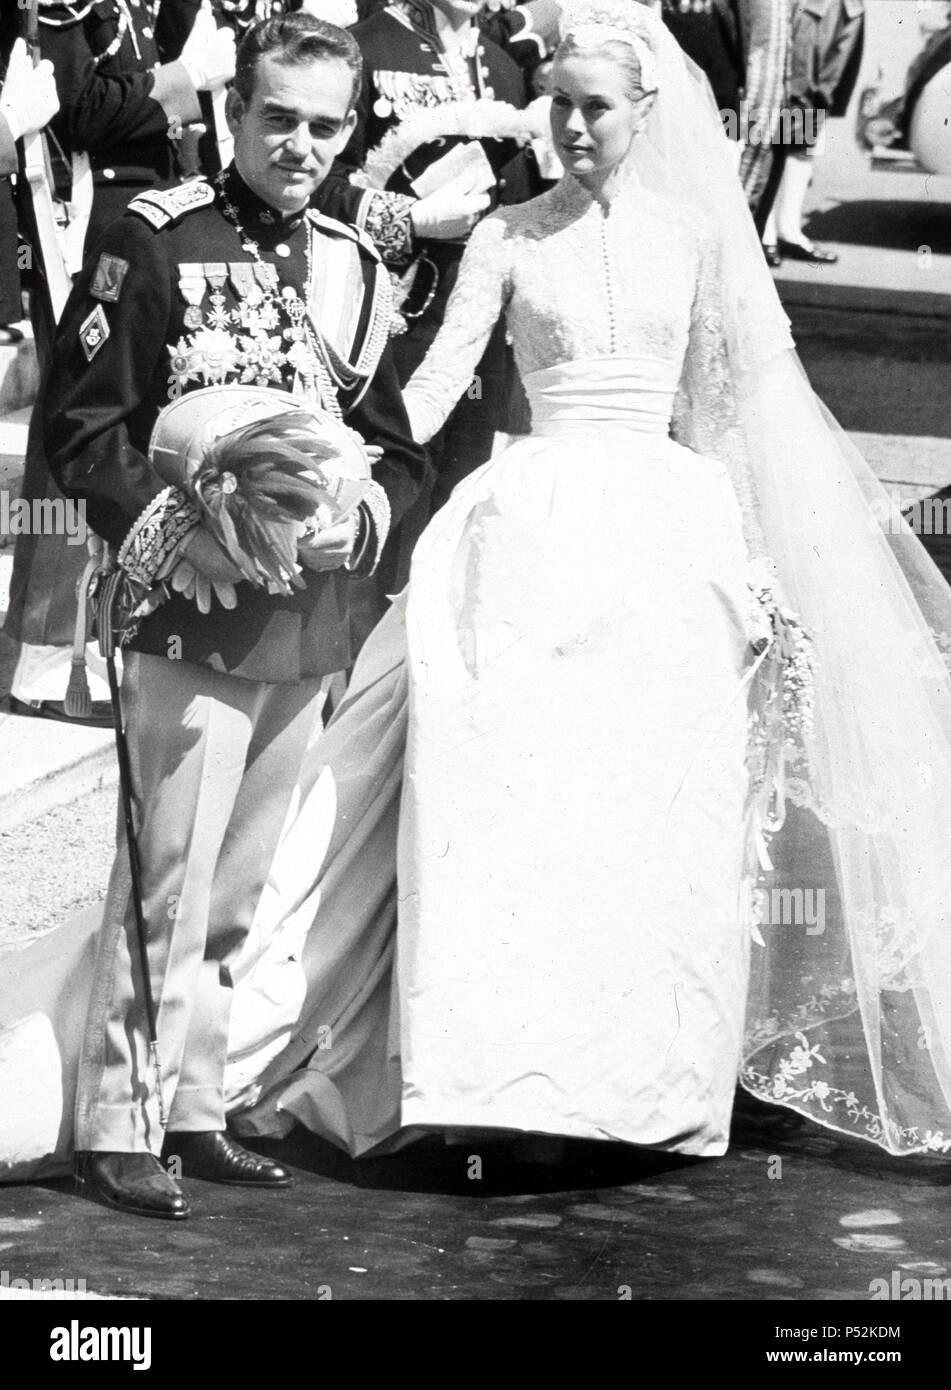 Prince Rainier and her Serene Highness Princess Gracia of Monaco after the wedding services. - Stock Image